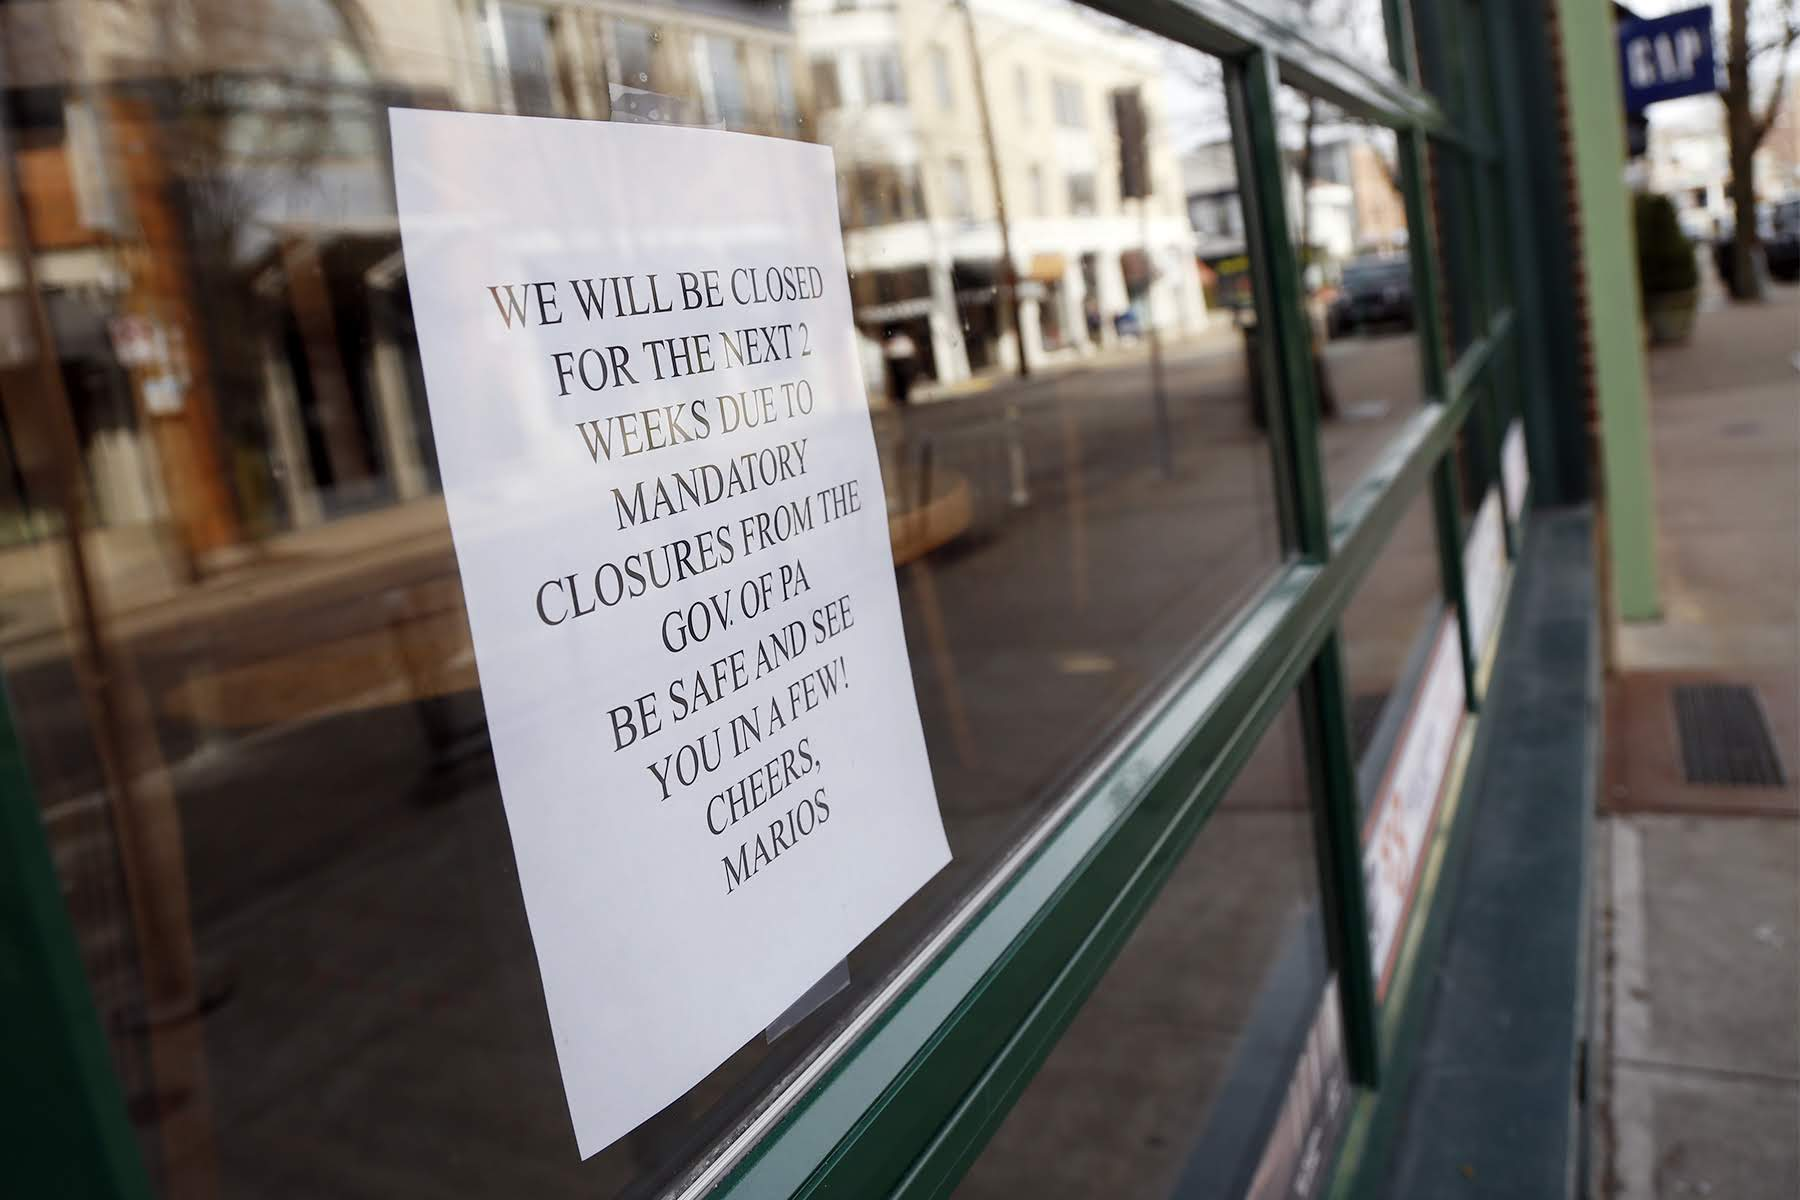 A sign posted in a window at Mario's East Side Saloon in Shadyside lets customers know they are temporarily closed. (Photo by Ryan Loew/PublicSource)